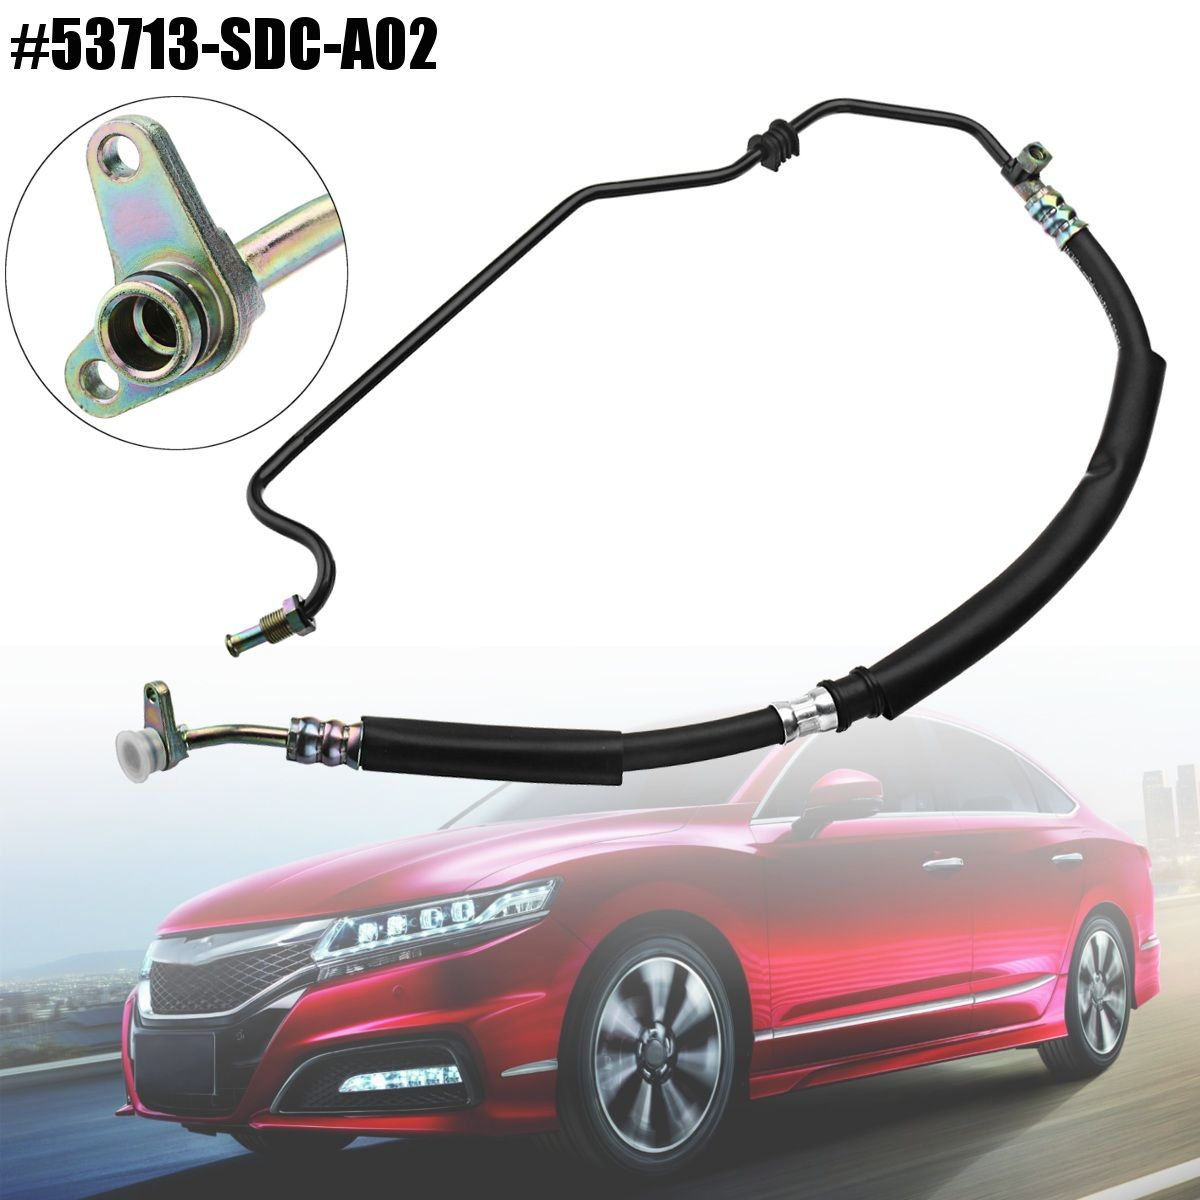 Power Steering Pressure Hose Line Assembly For Honda TSX /Accord 2.4L 2004-2008 53713-SDC-A02 53713-SDA-A52